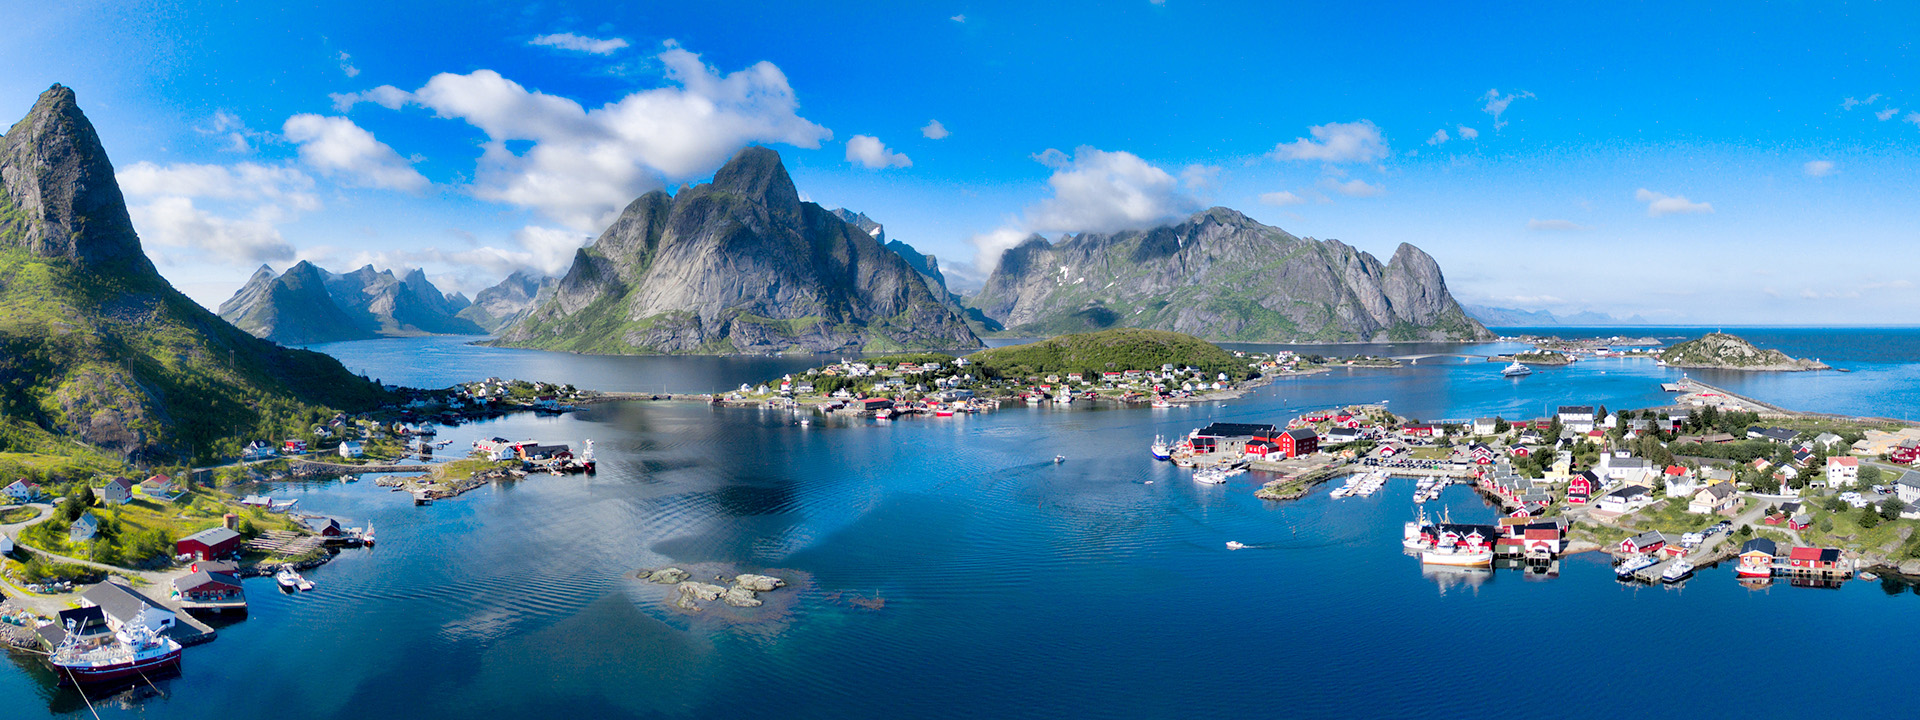 Aerial panorama of Reine, scenic fishing town on Lofoten islands in Norway